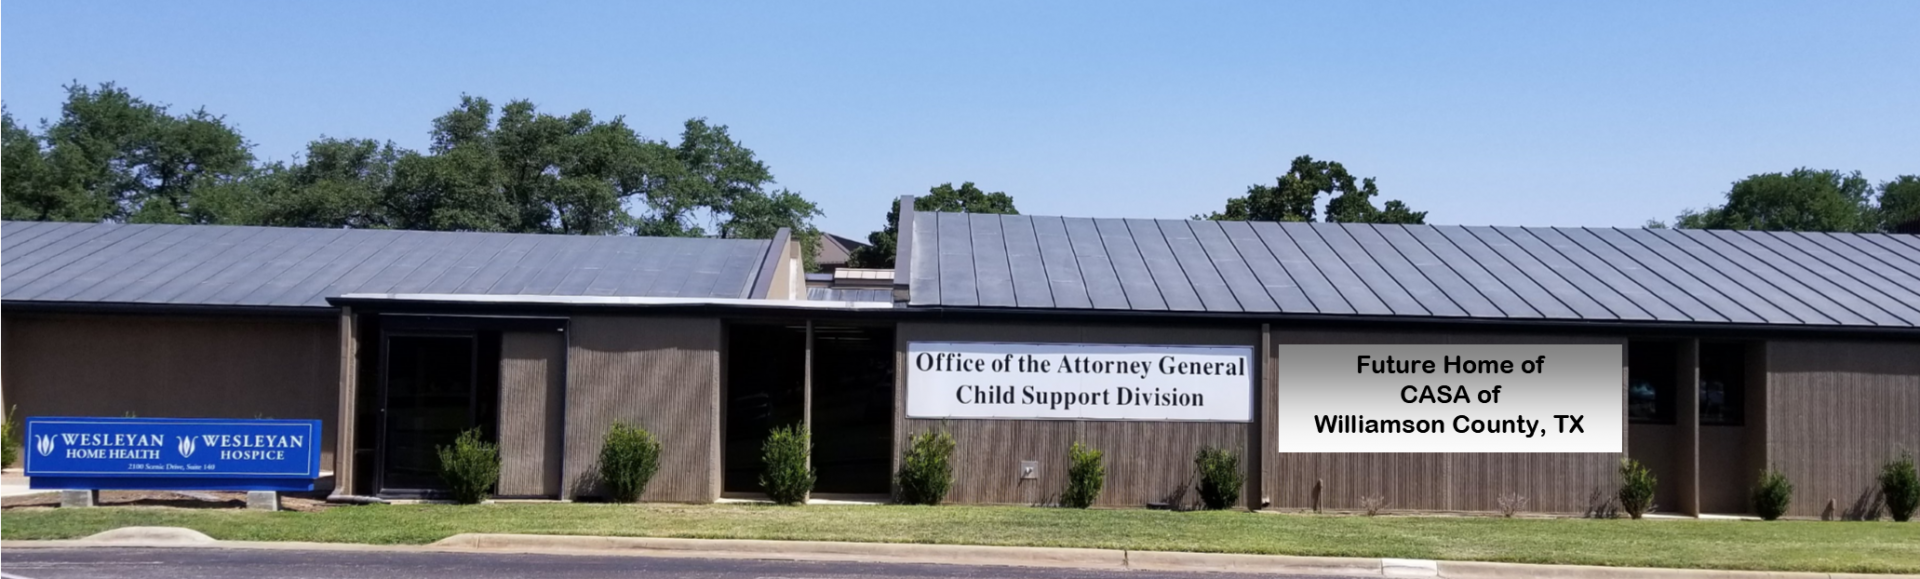 New Office Exterior